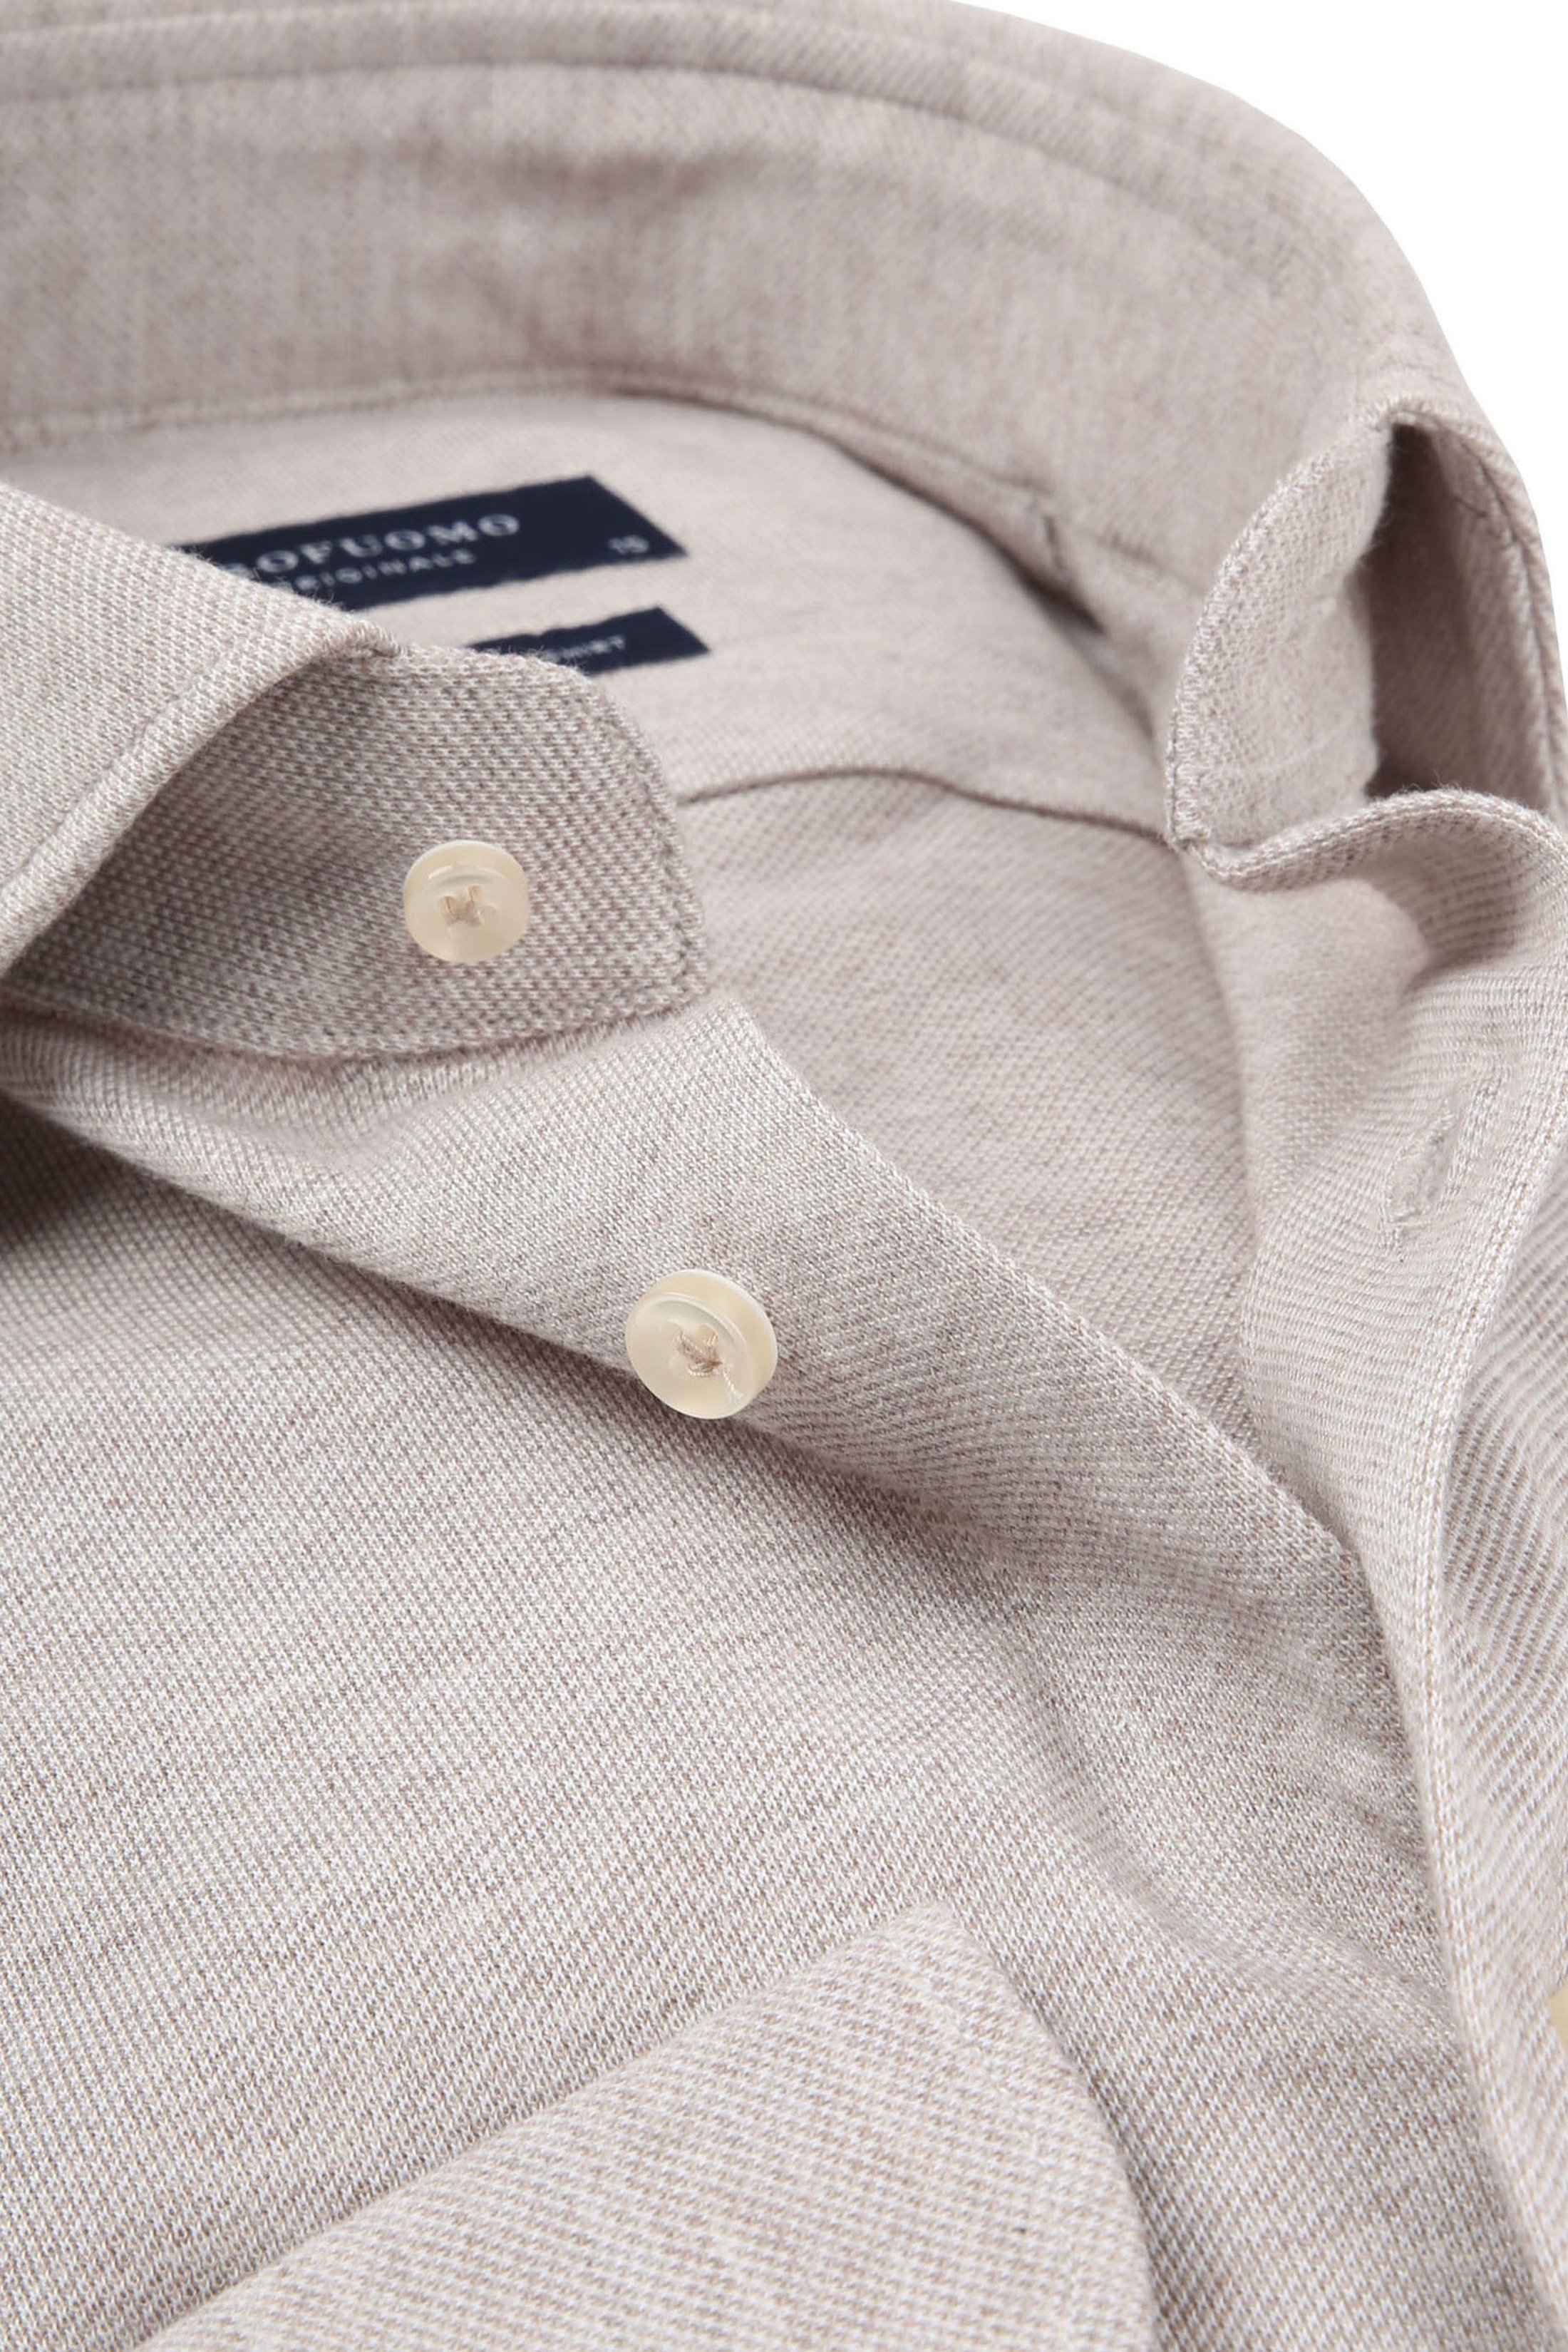 Profuomo Shirt Knitted Beige foto 1